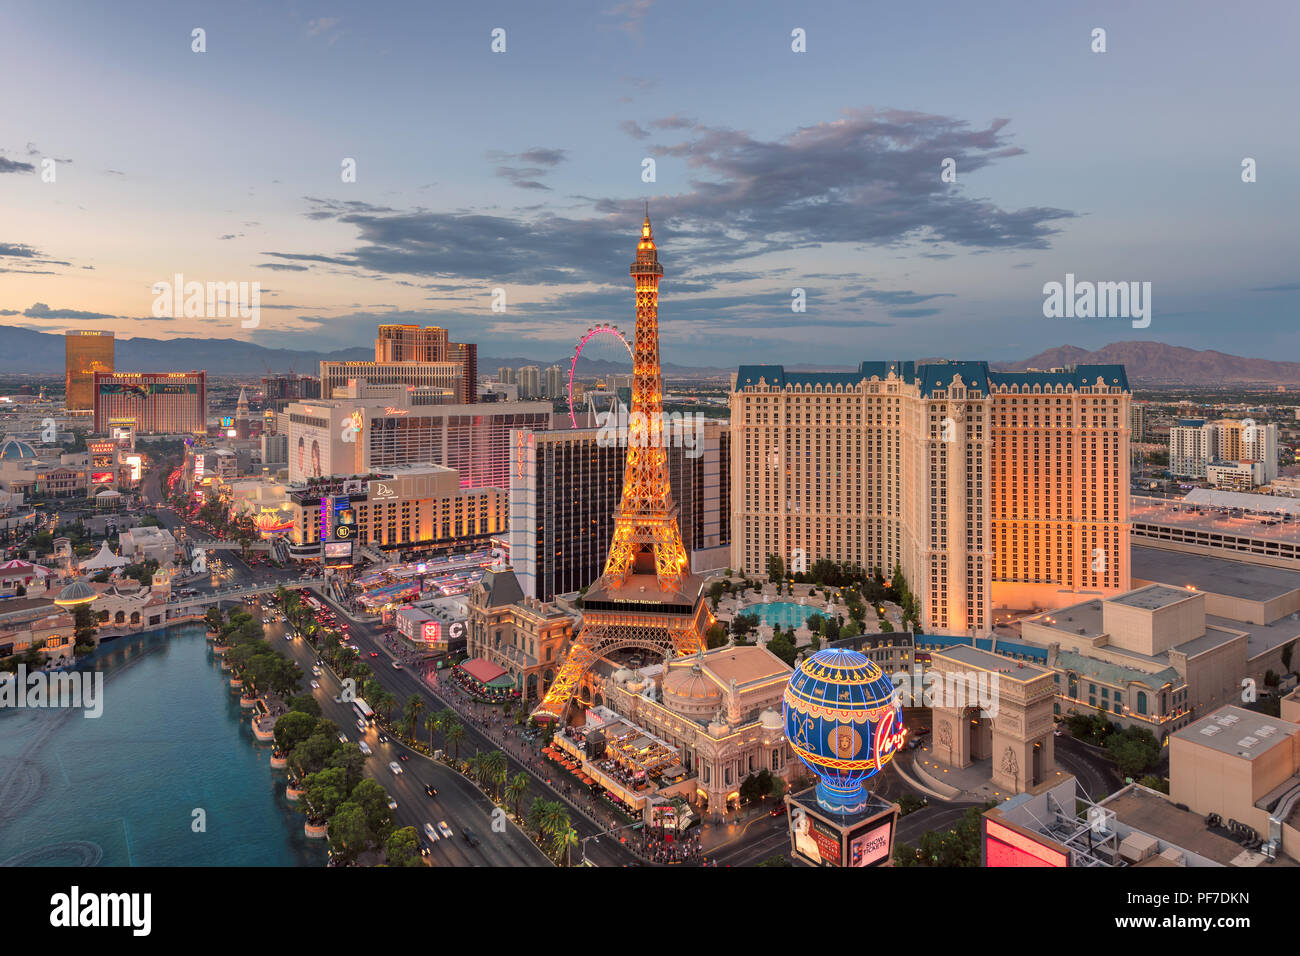 Strip de Las Vegas skyline at sunset Photo Stock